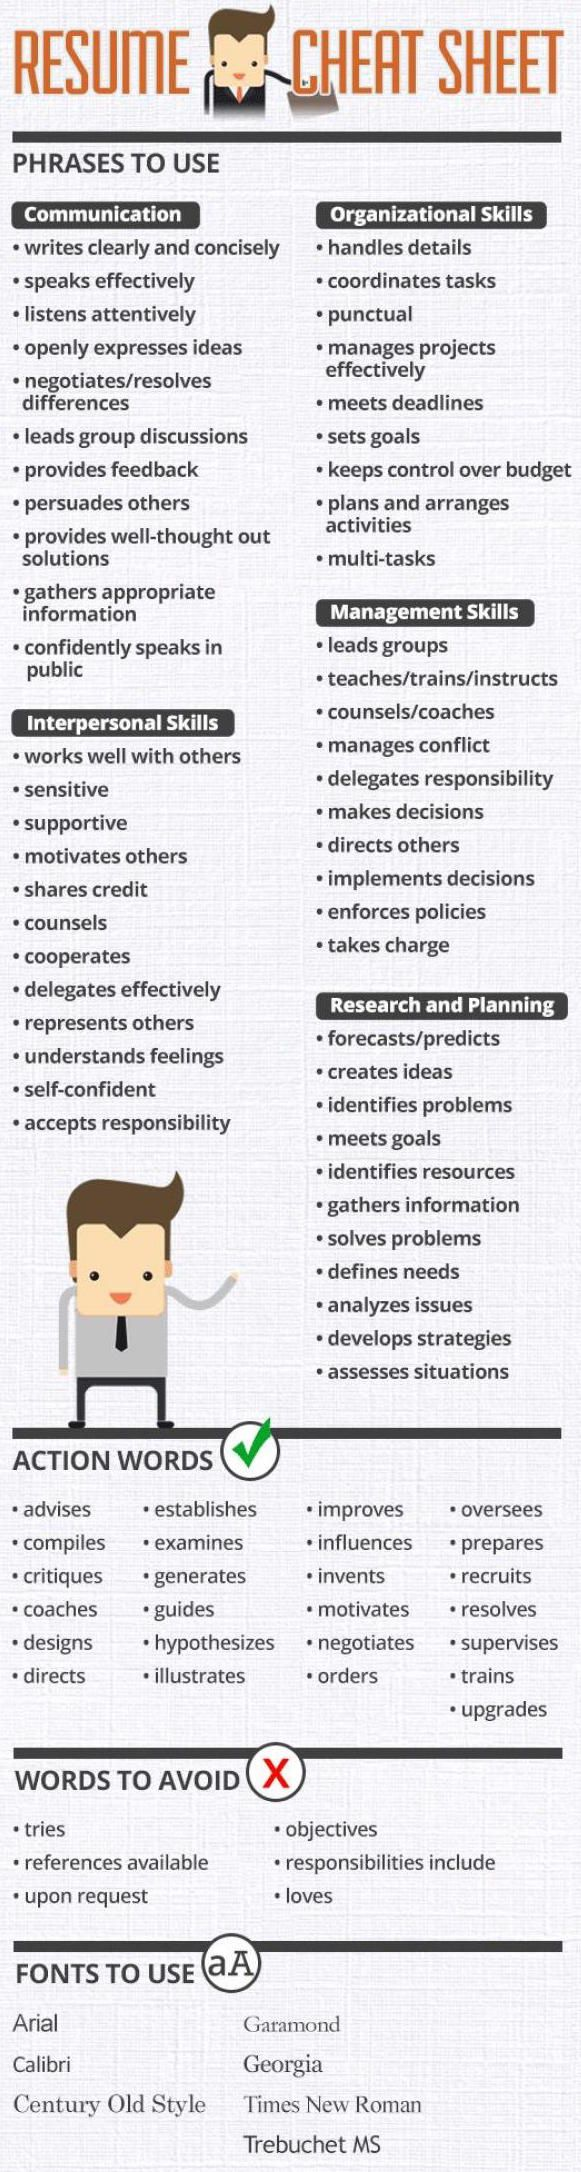 best ideas about business resume resume tips 17 best ideas about business resume resume tips job search and job search tips